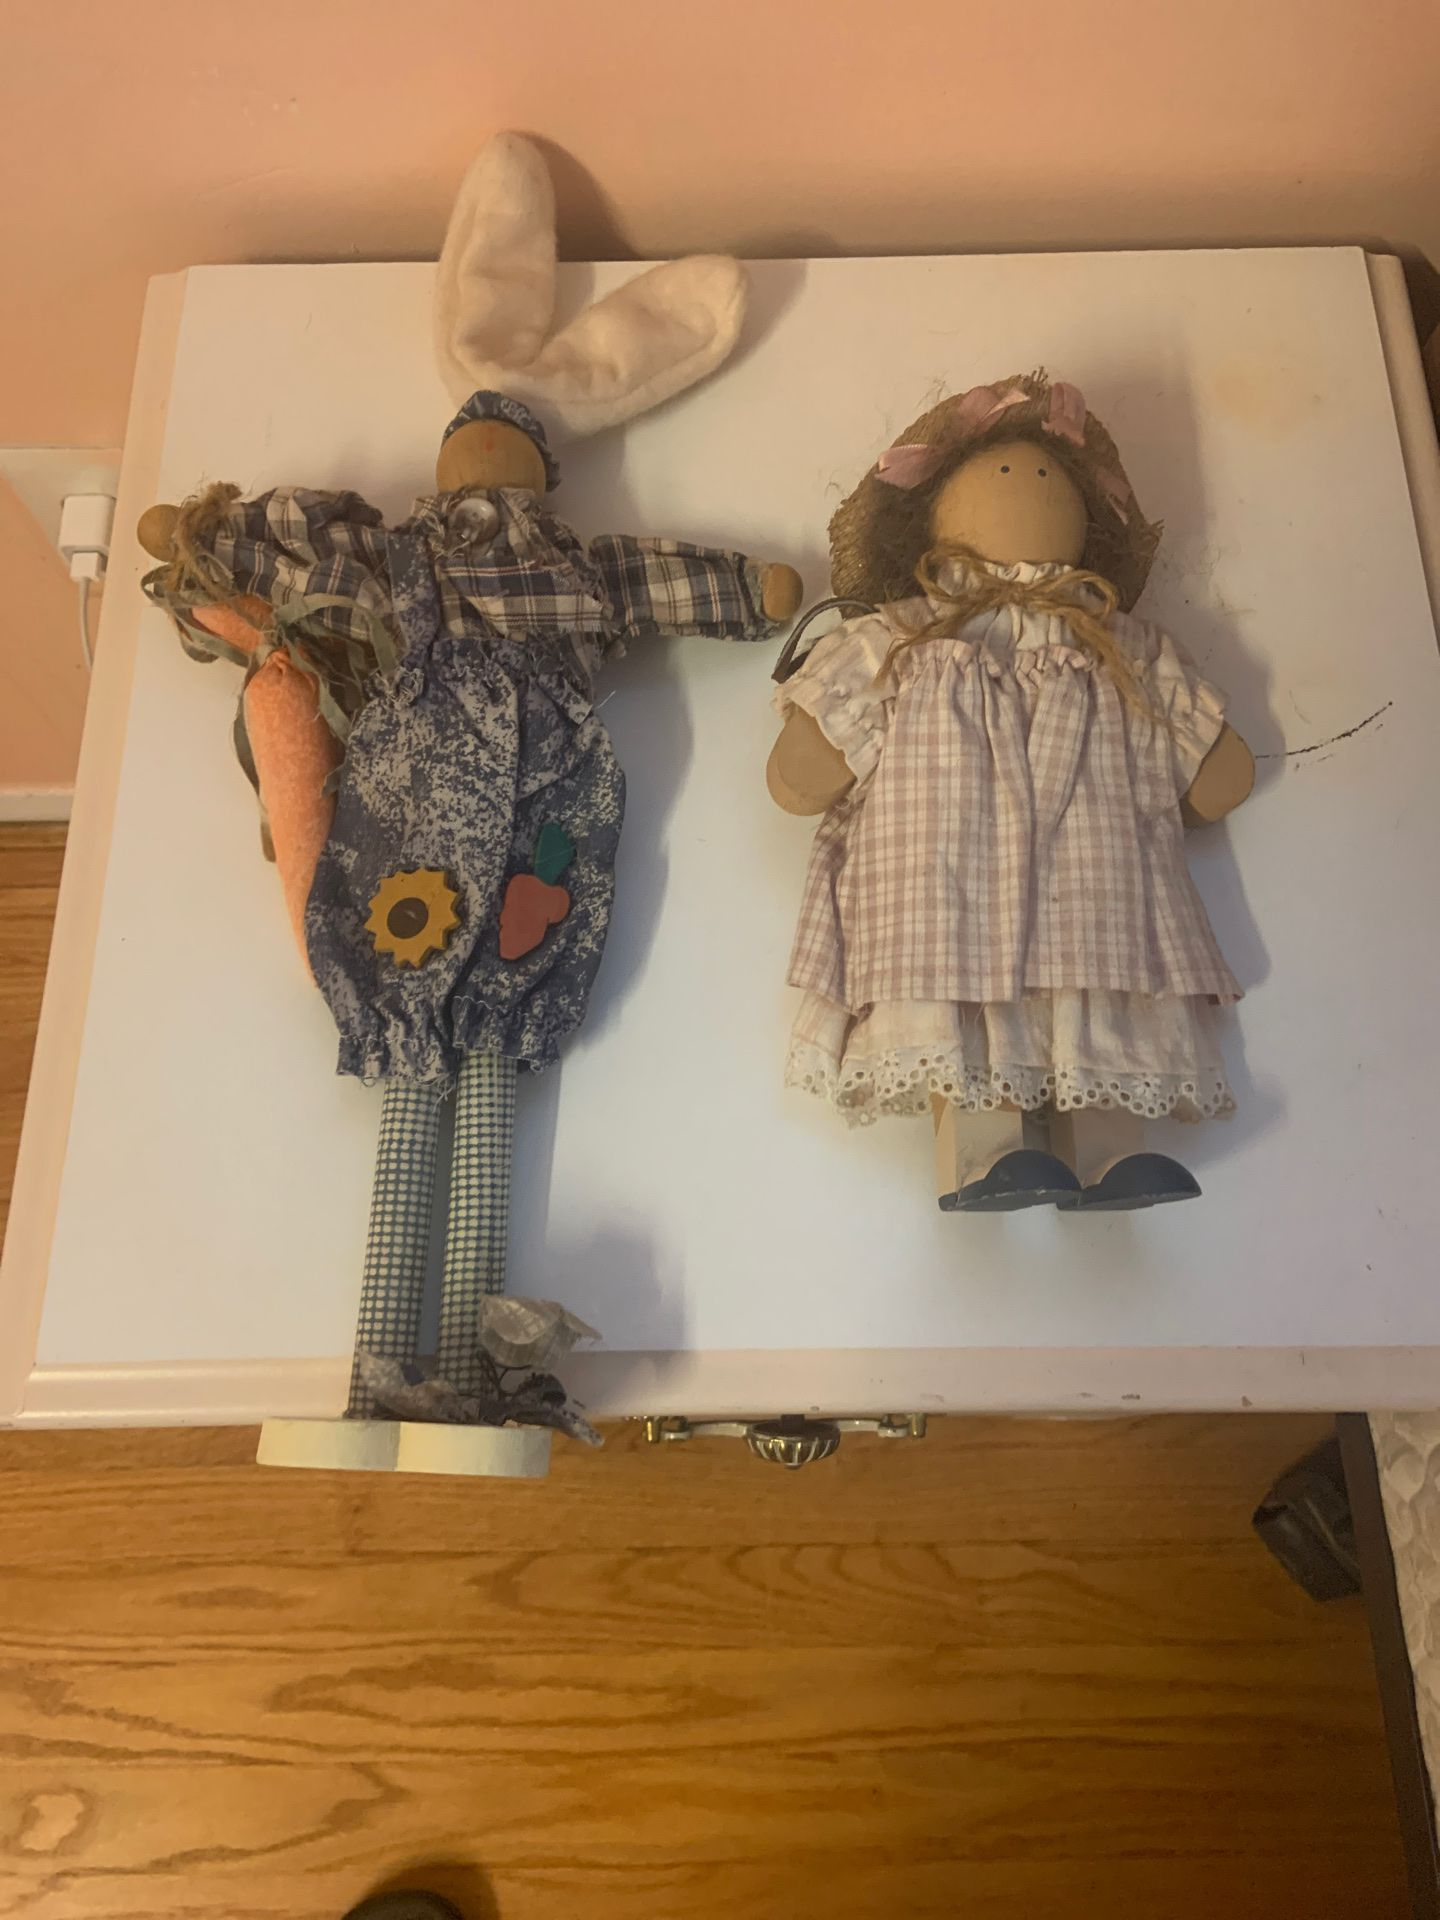 Nice antique doll figures